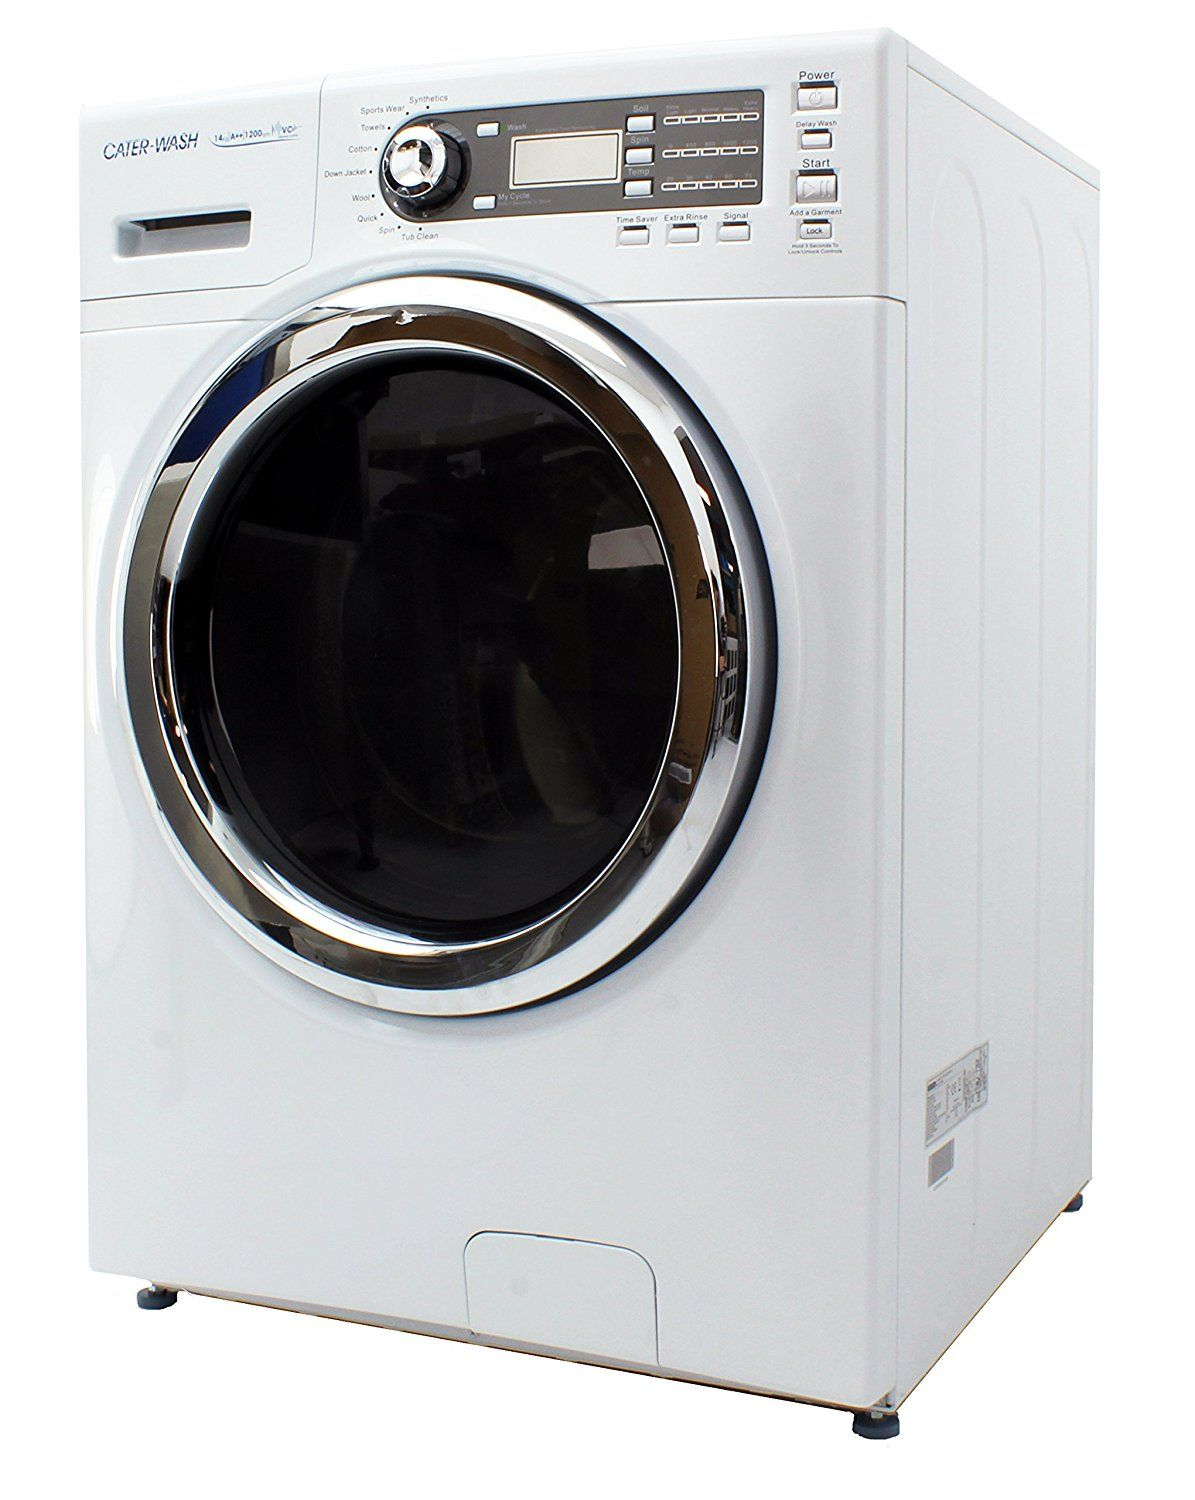 Wf1124xac 12kg 1400rpm Ecobubble Vrt Washing Machine With Images Samsung Washing Machine Front Loading Washing Machine Washing Machine